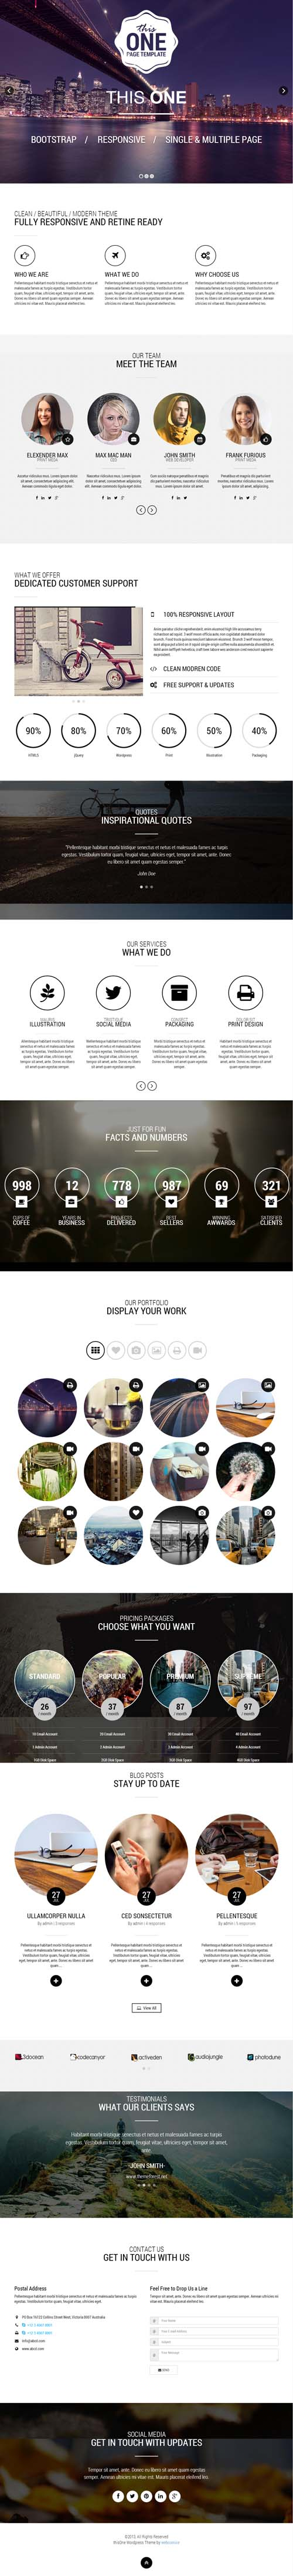 This One - One Page Responsive WordPress Theme